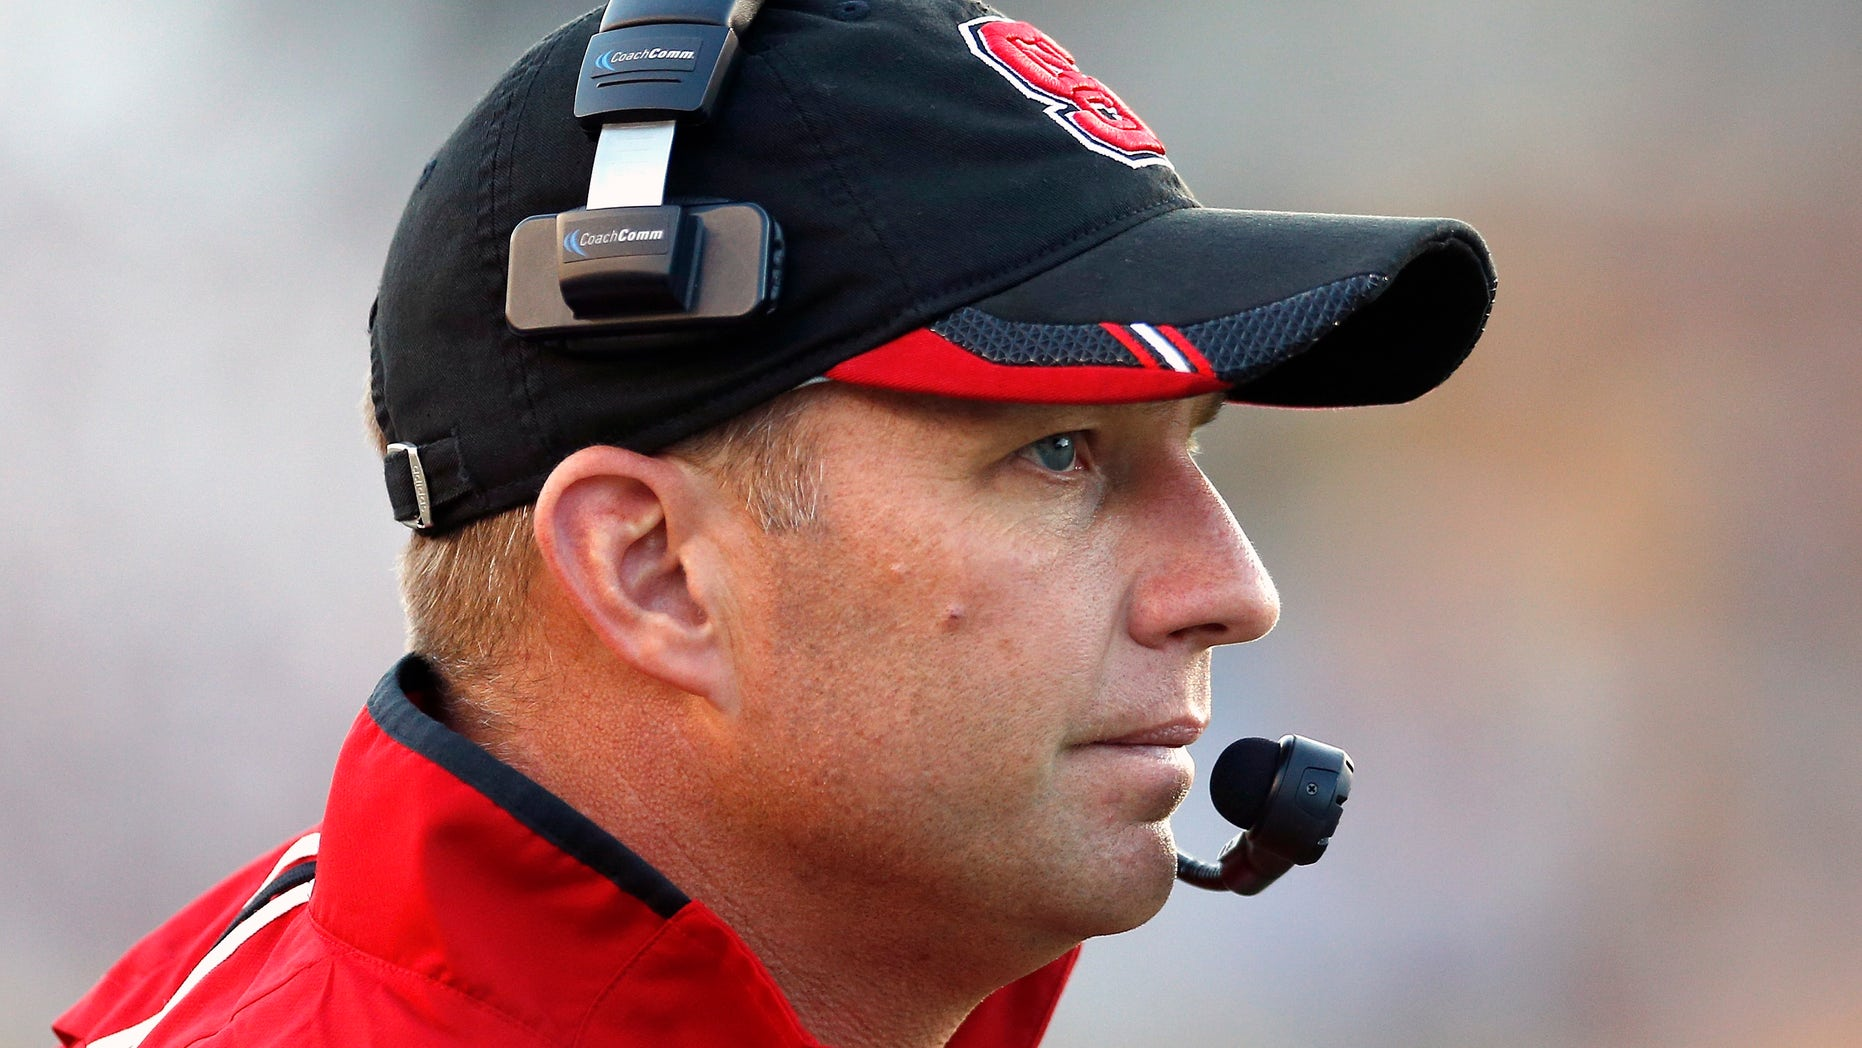 North Carolina State head coach Dave Doeren watches from the sideline in the fourth quarter of an NCAA college football game against  Boston College in Boston, Saturday, Nov. 16, 2013. Boston College won 38-21. (AP Photo/Michael Dwyer)